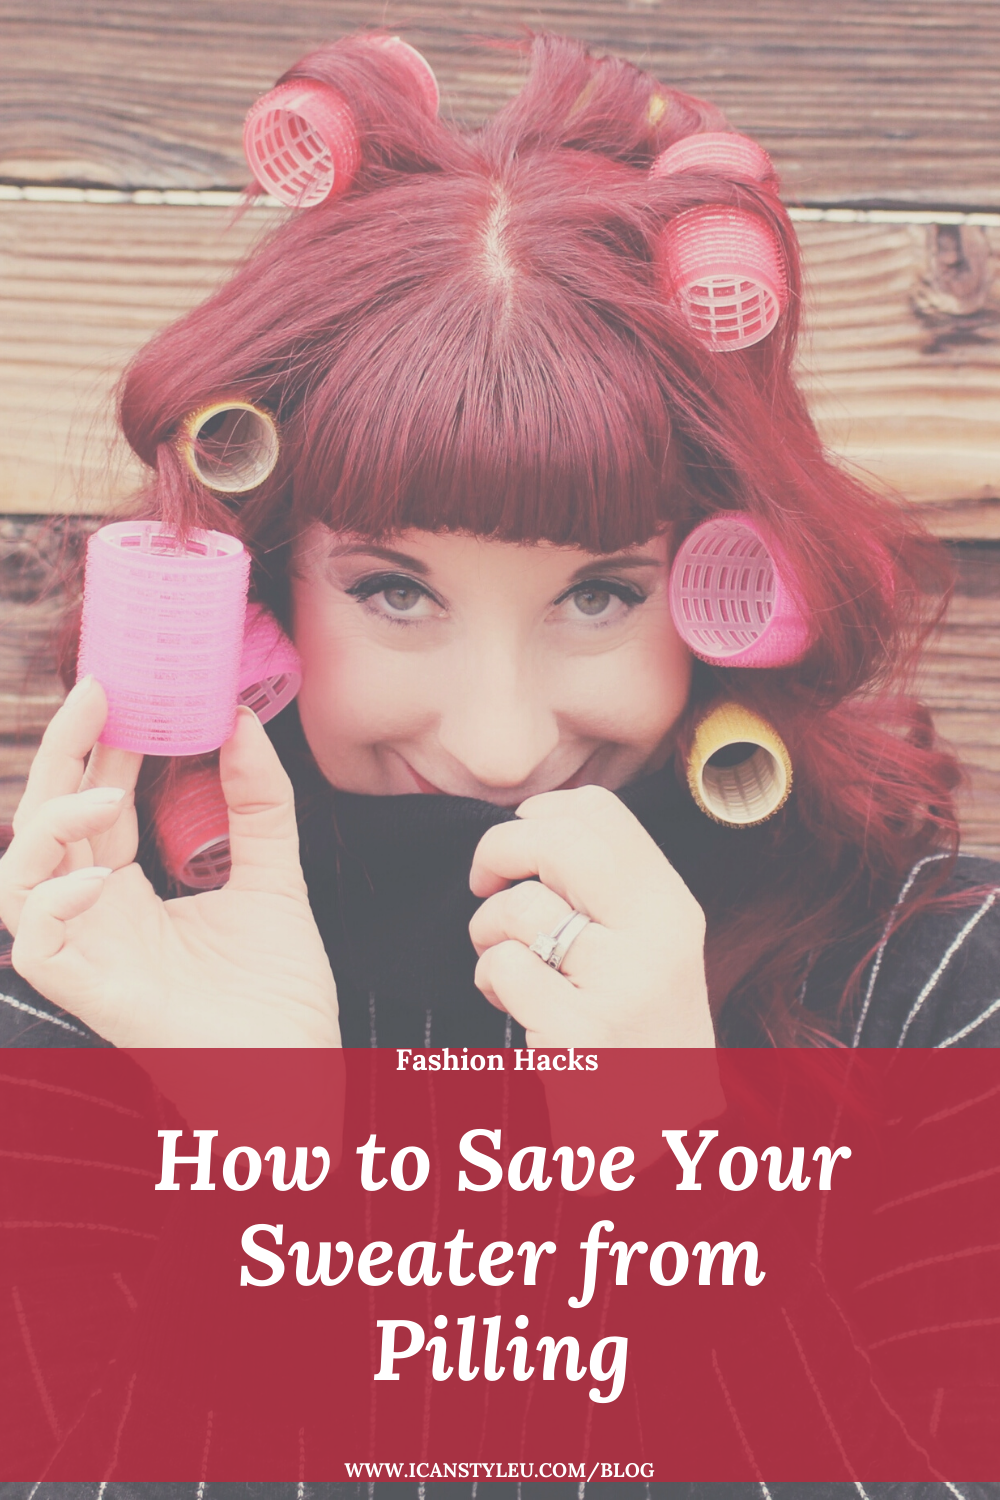 How to Save Your Sweater from Pilling